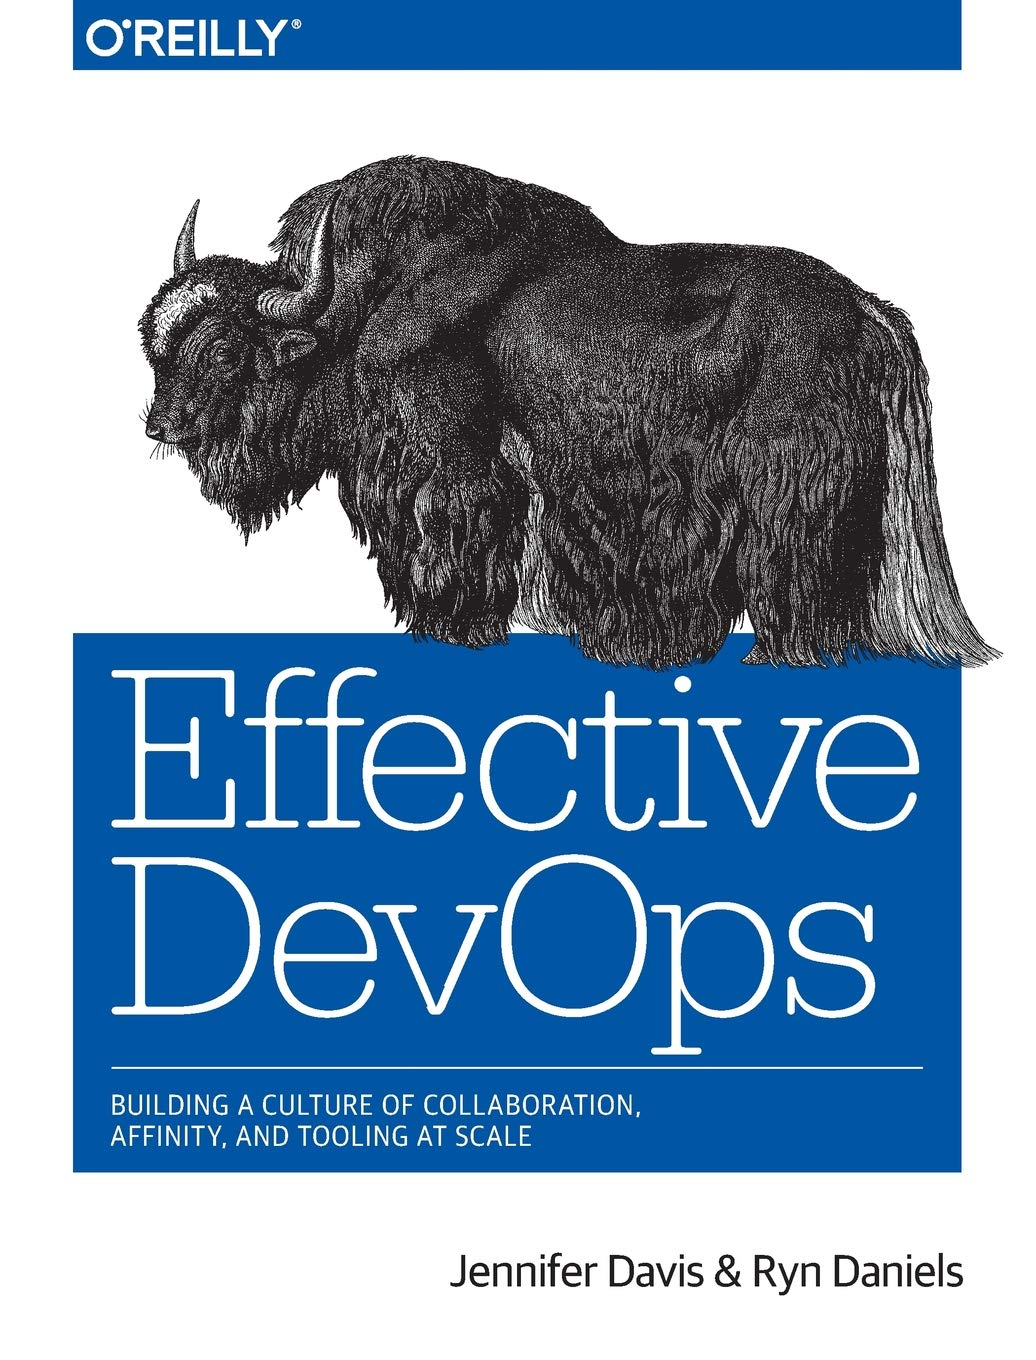 """<a href=""""https://www.amazon.com/Effective-DevOps-Building-Collaboration-Affinity/dp/1491926309"""" target=""""_blank"""" rel=""""noopener noreferrer nofollow"""">Davis J., Daniels R. Effective DevOps: Building a Culture of Collaboration, Affinity, and Tooling at Scale</a>"""